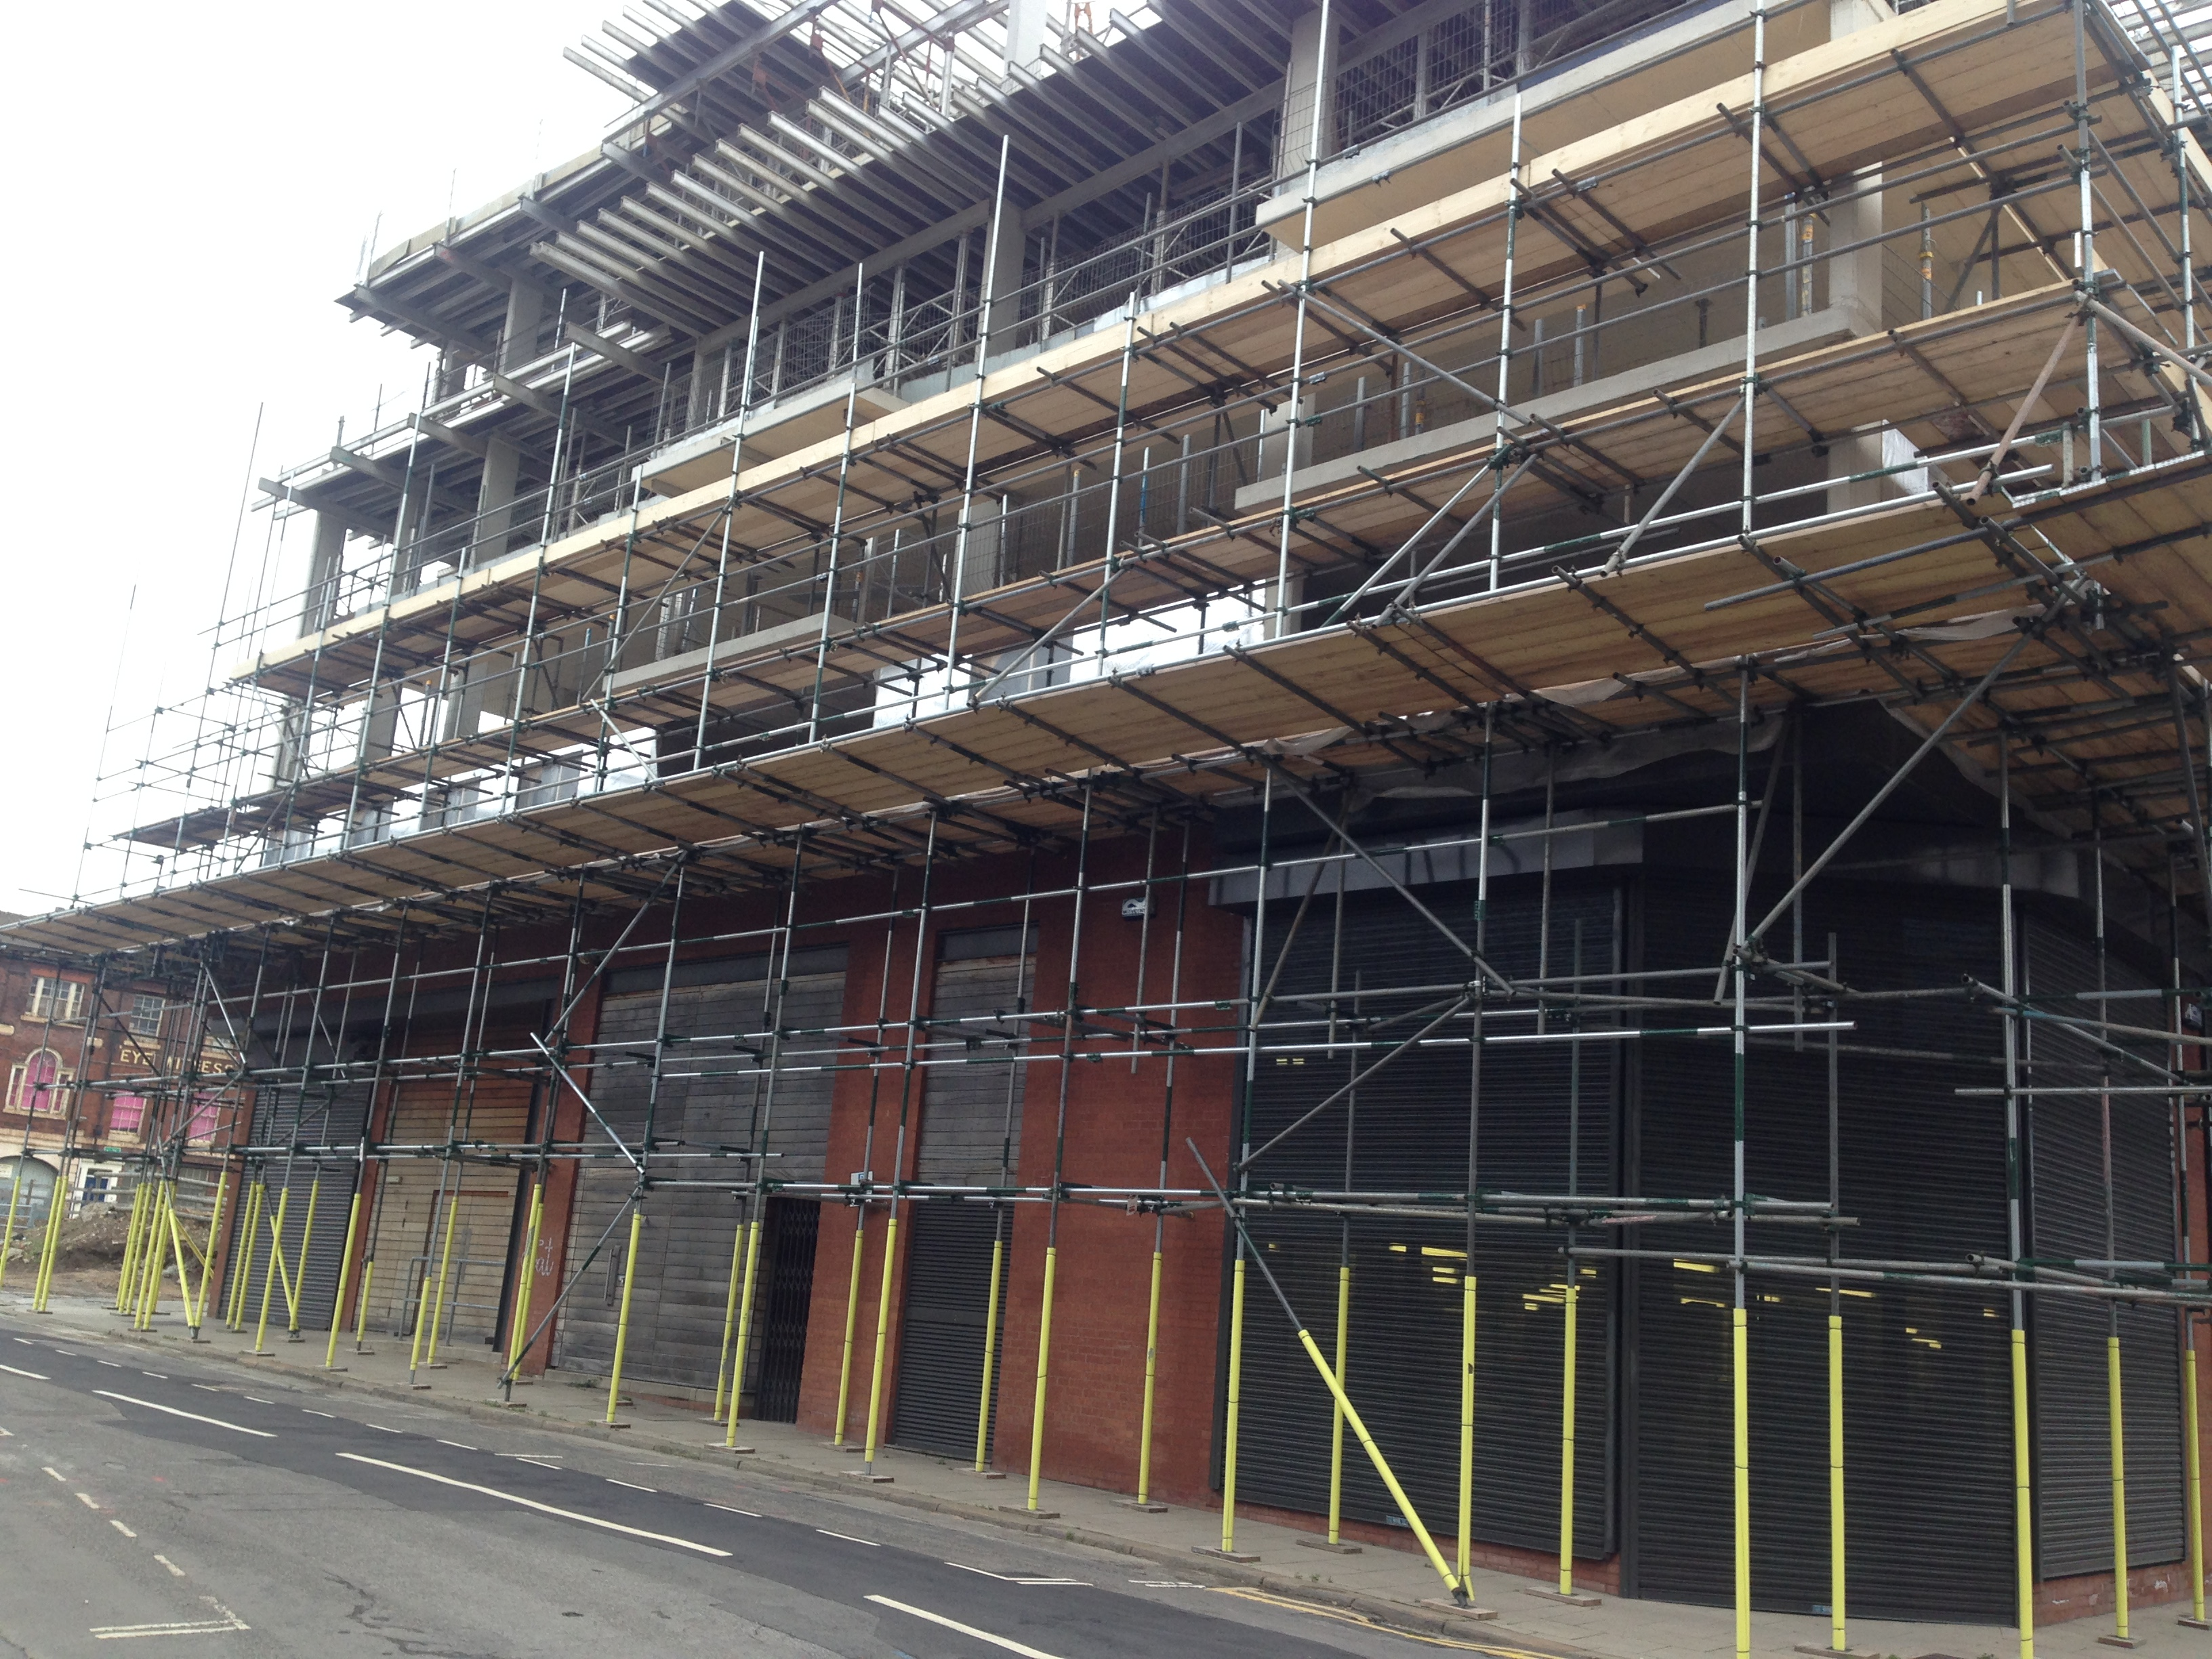 Scaffolding Company Sheffield - Local Scaffold Services Ltd